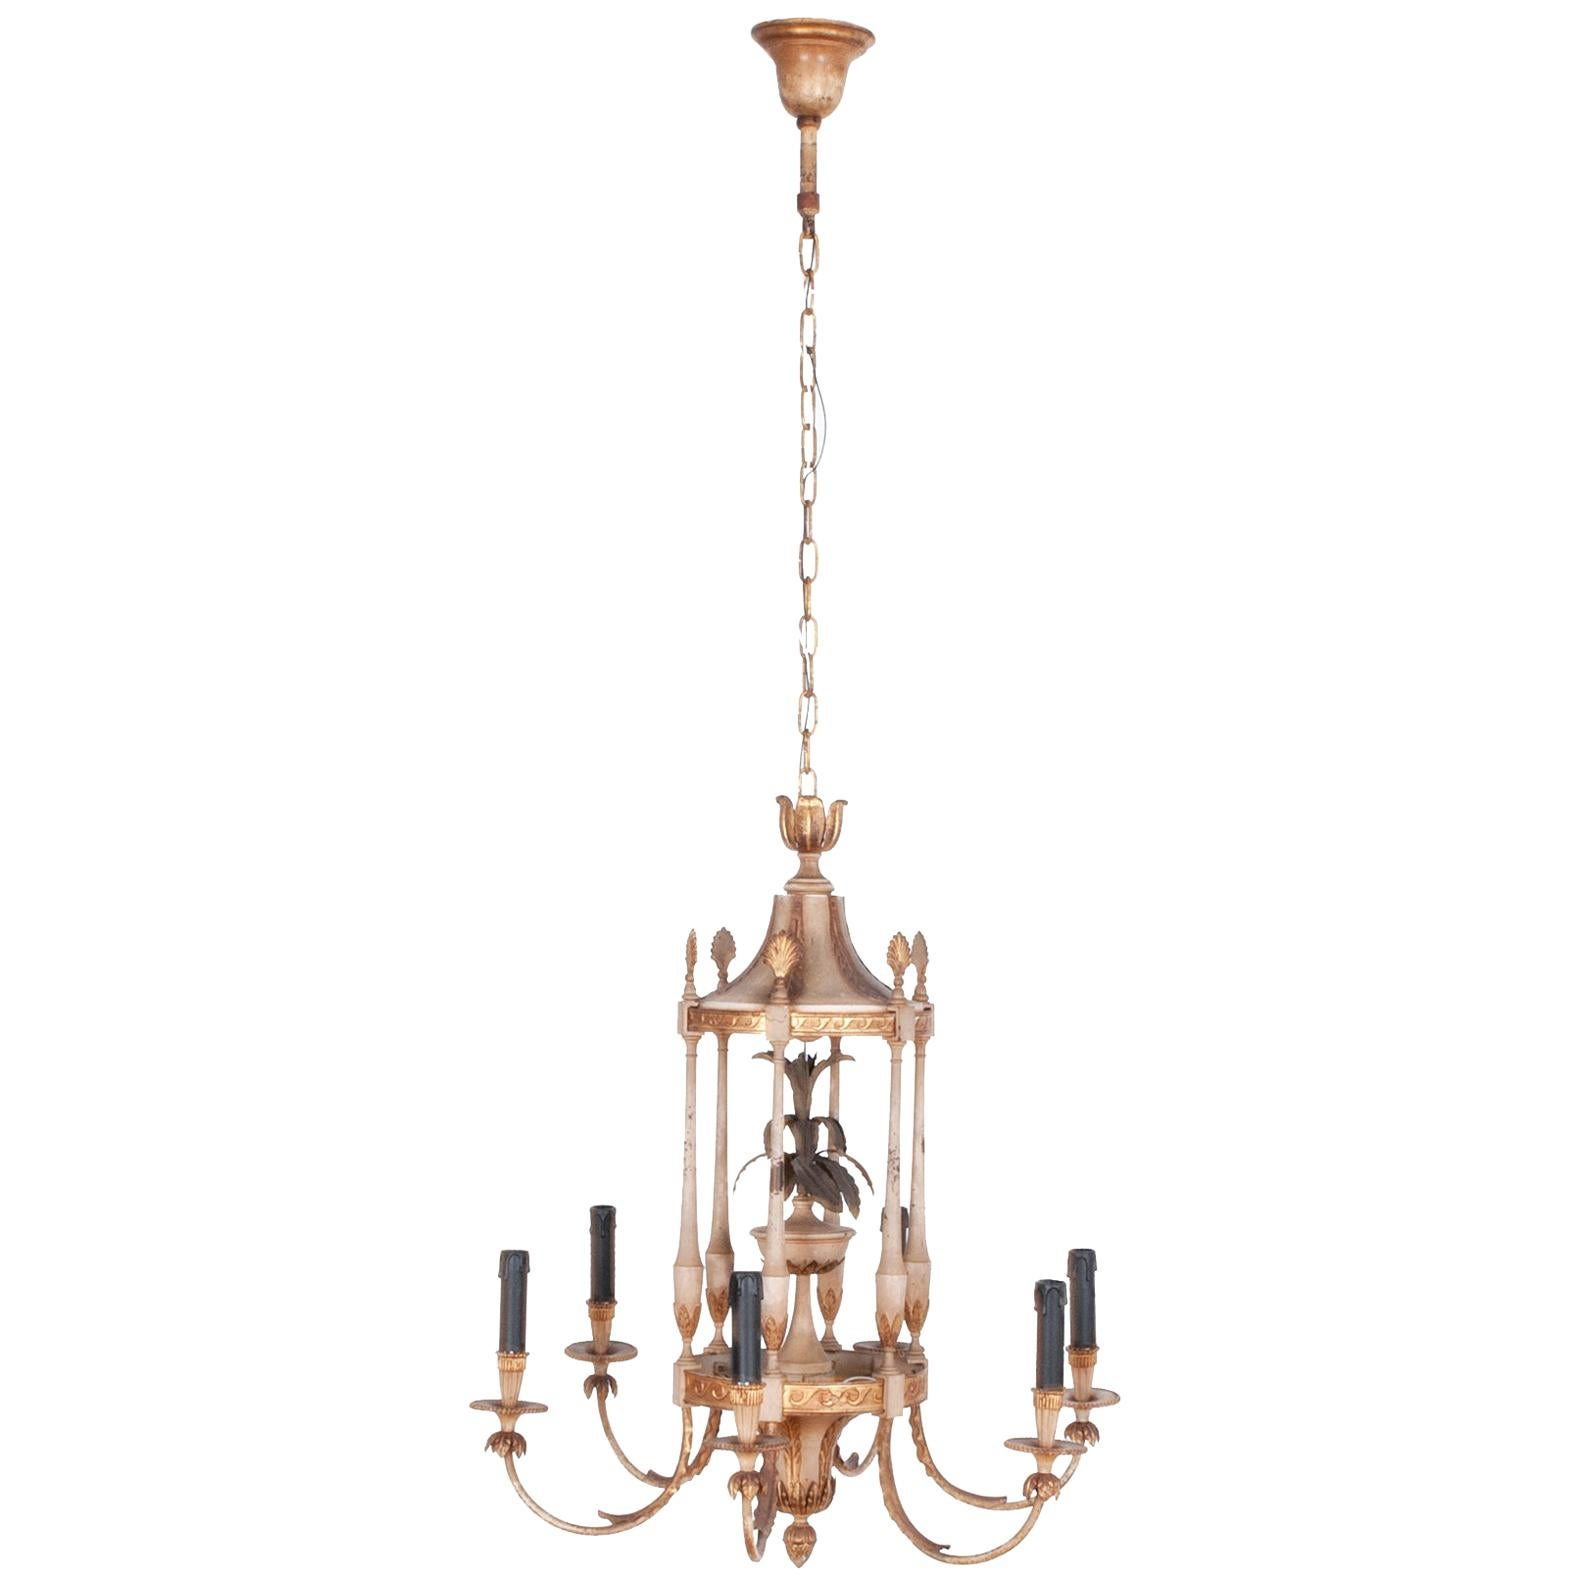 1920s French Tole Gilded Chandelier